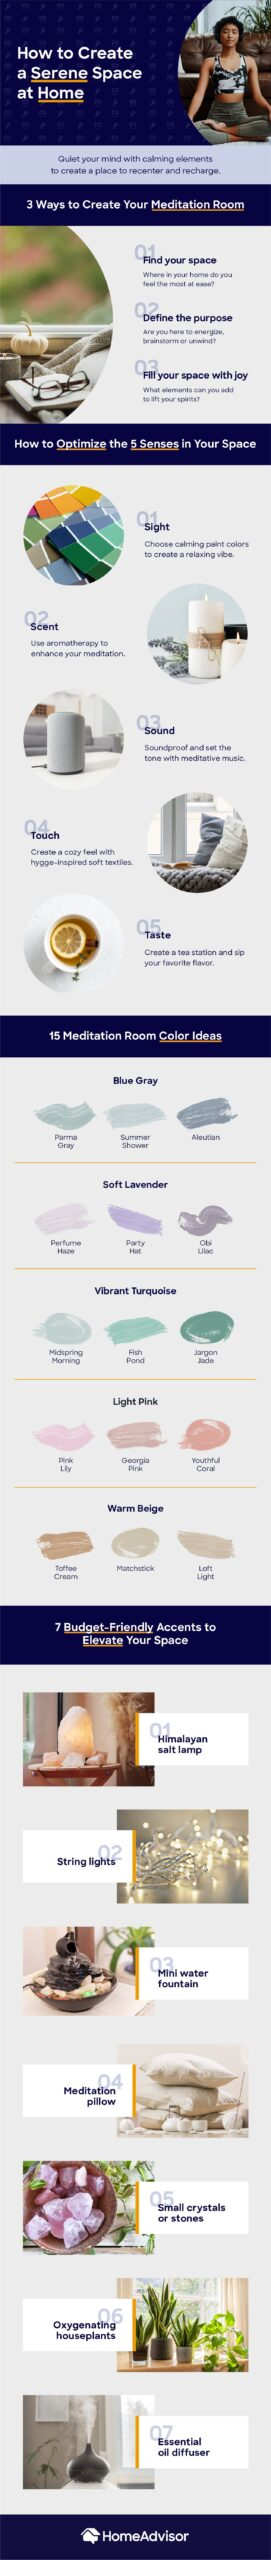 how-to-create-a-meditation-room-in-7-steps-infographic